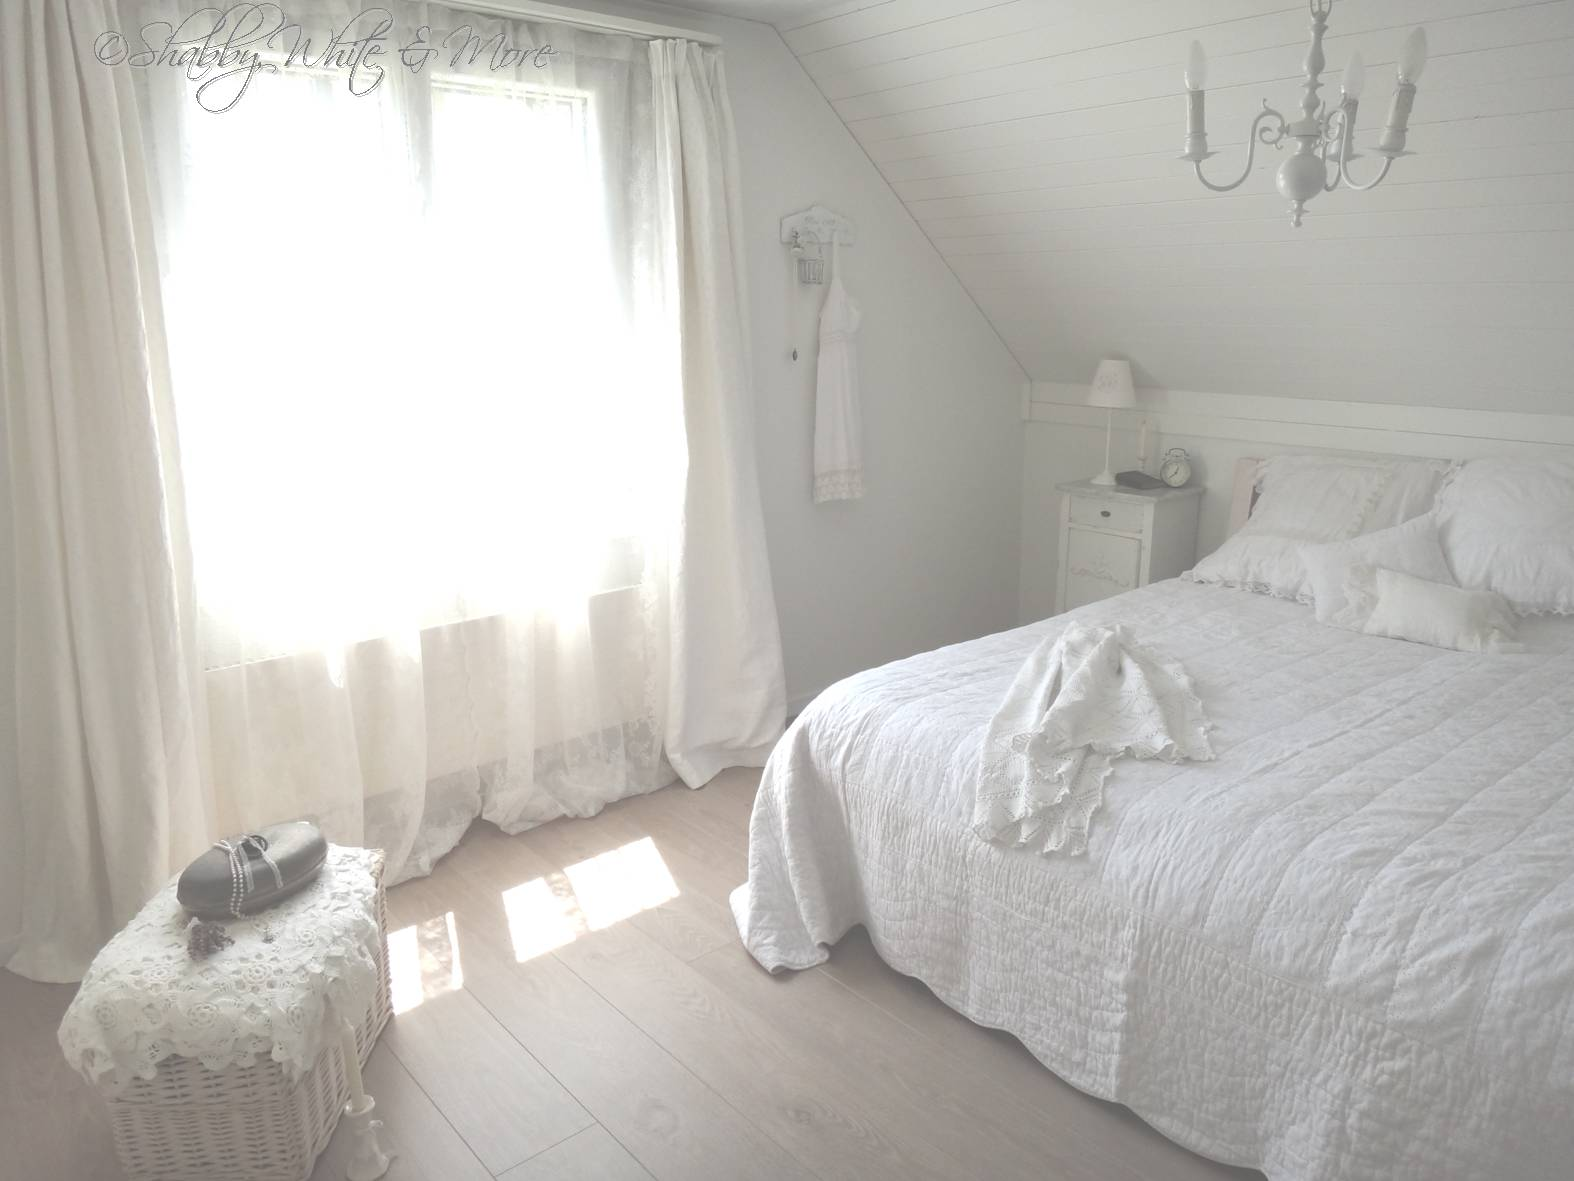 shabby, white and more...: neues Schlafzimmer...